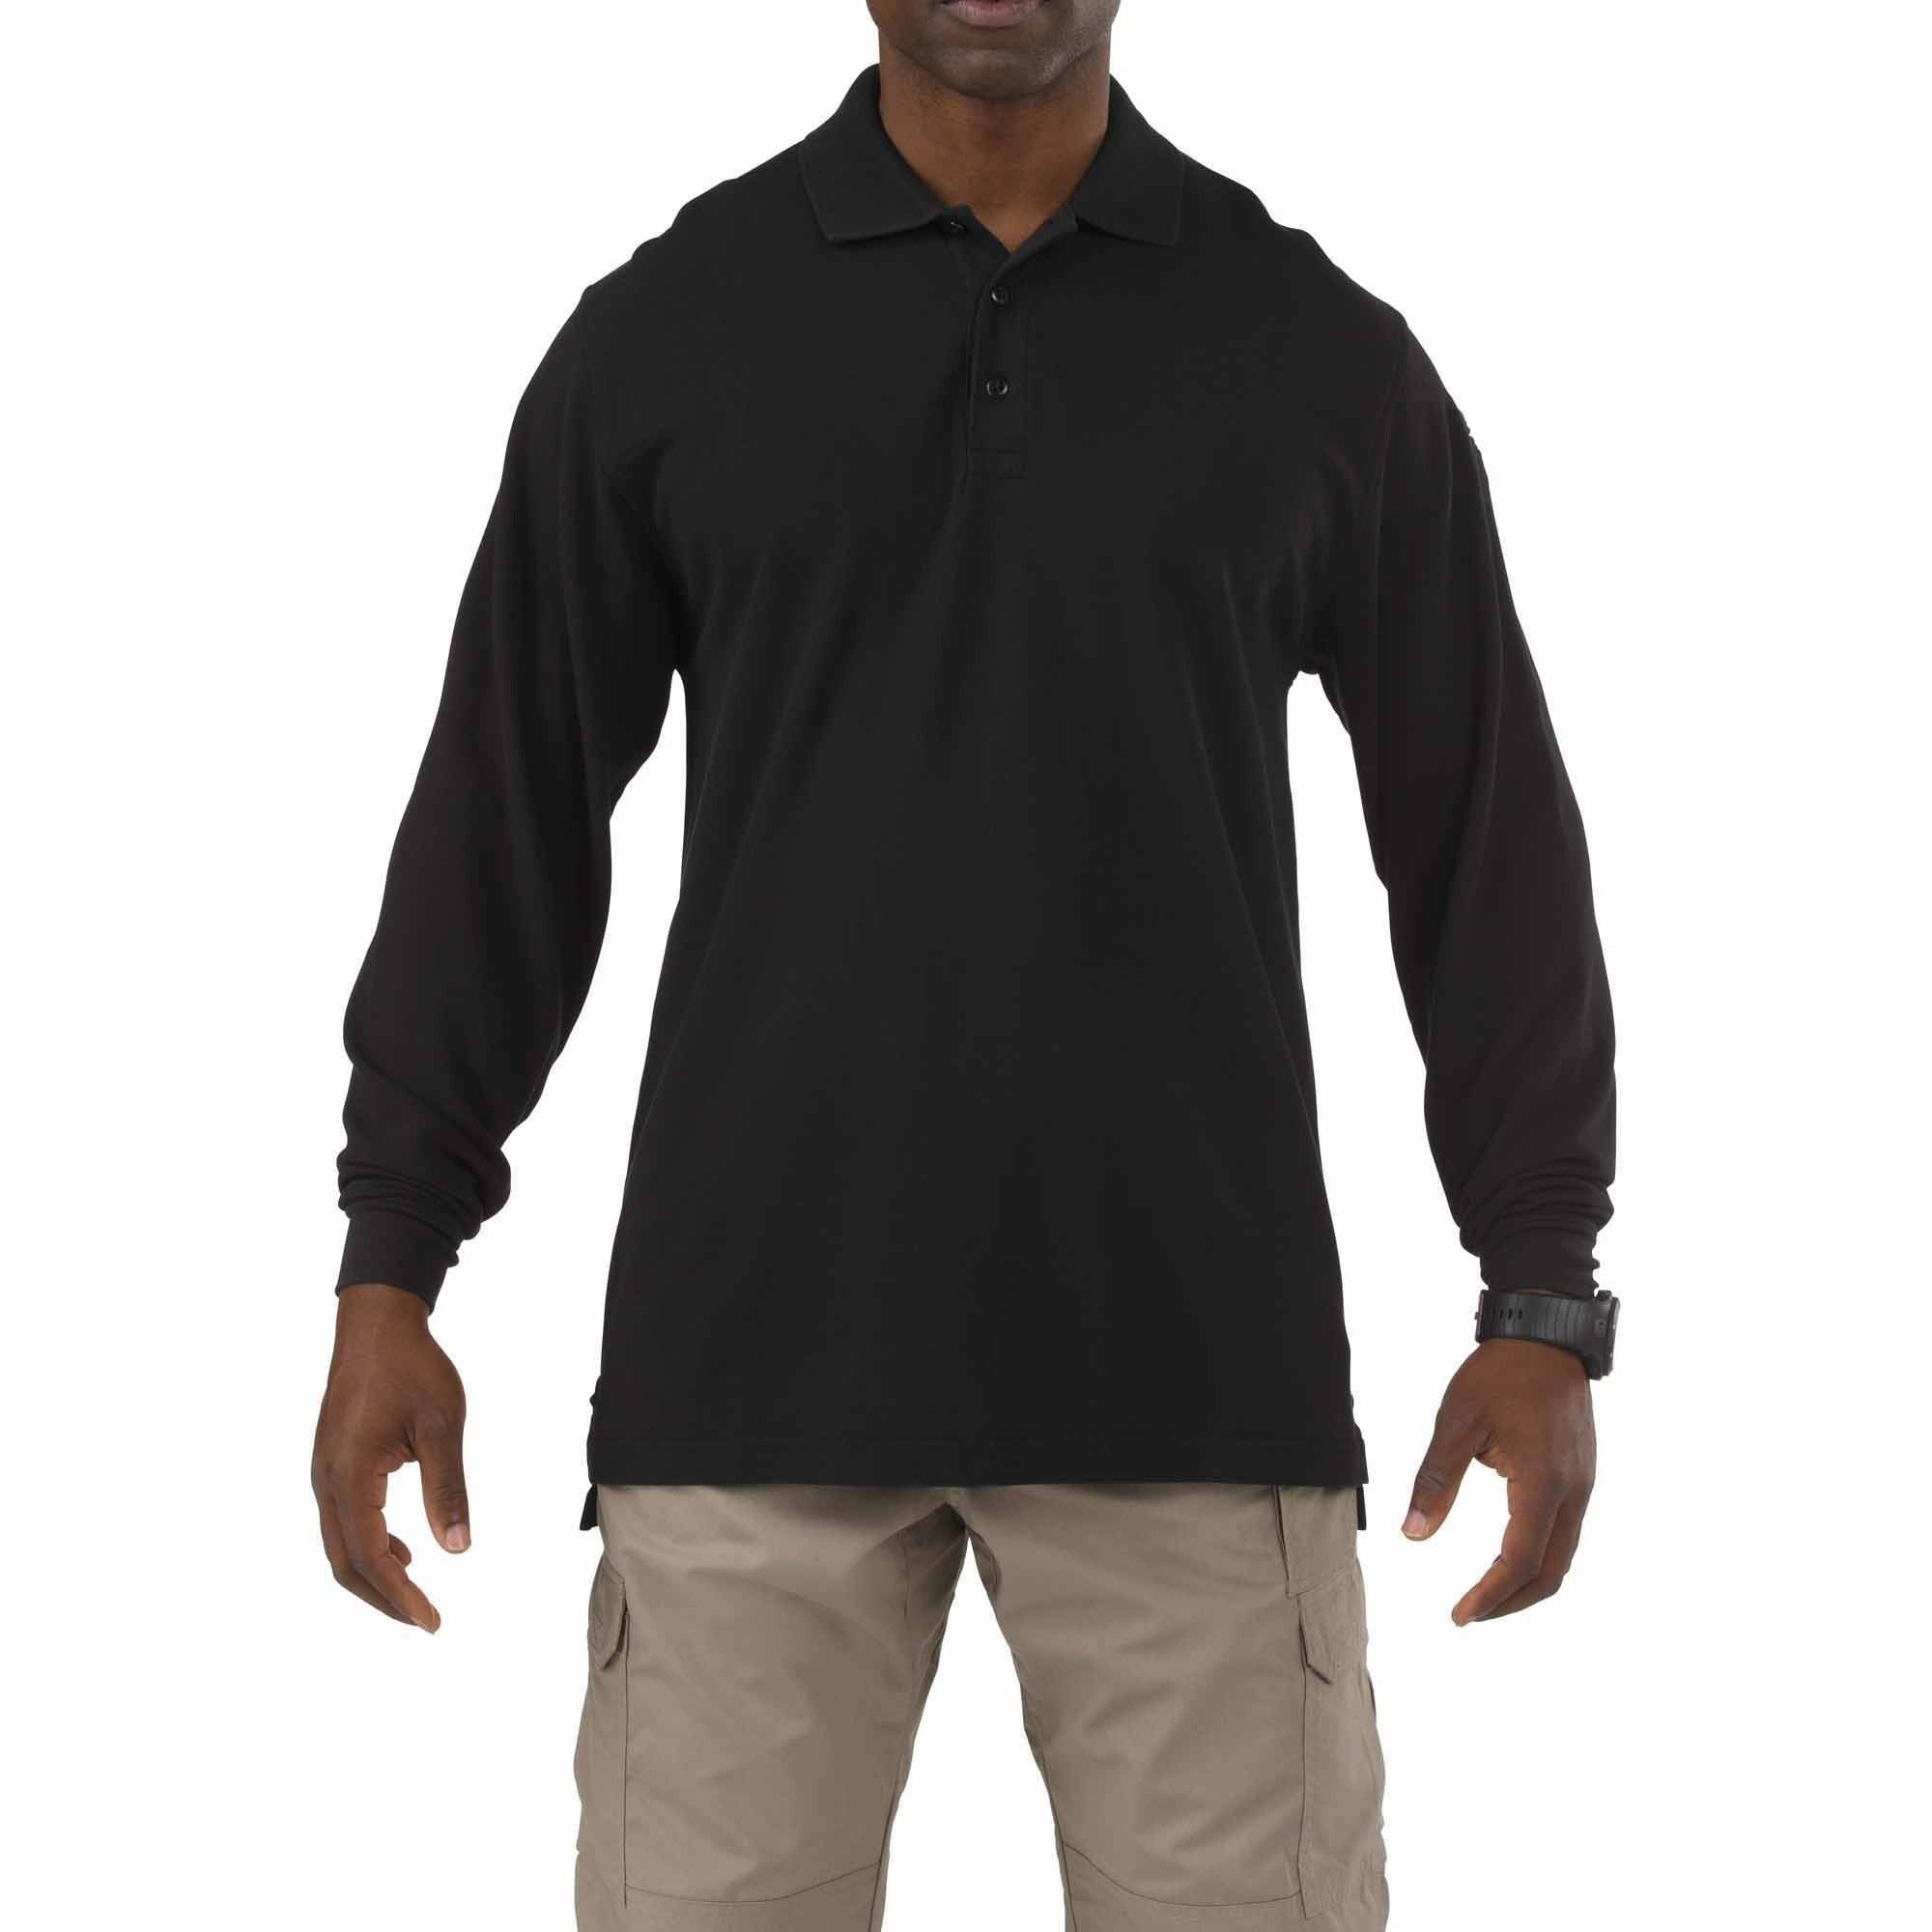 5.11 Tactical Long Sleeve Professional Polo Shirt, Black, Tall